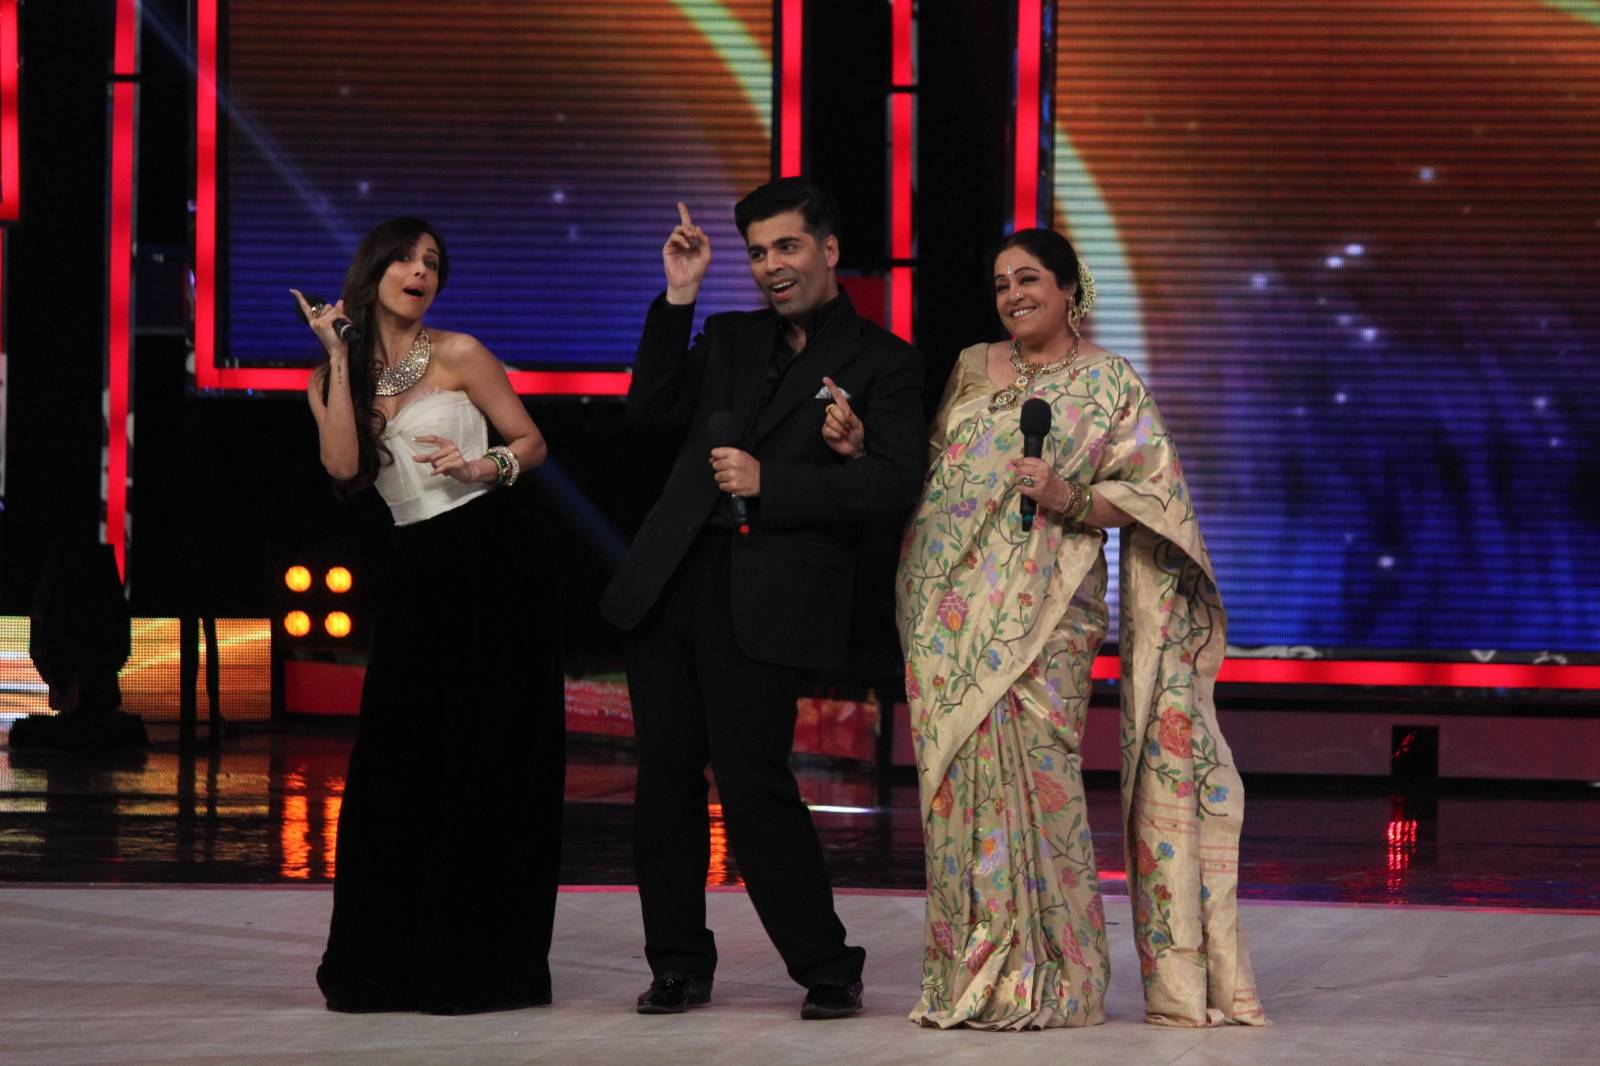 Judges' best moments on #IGT-5